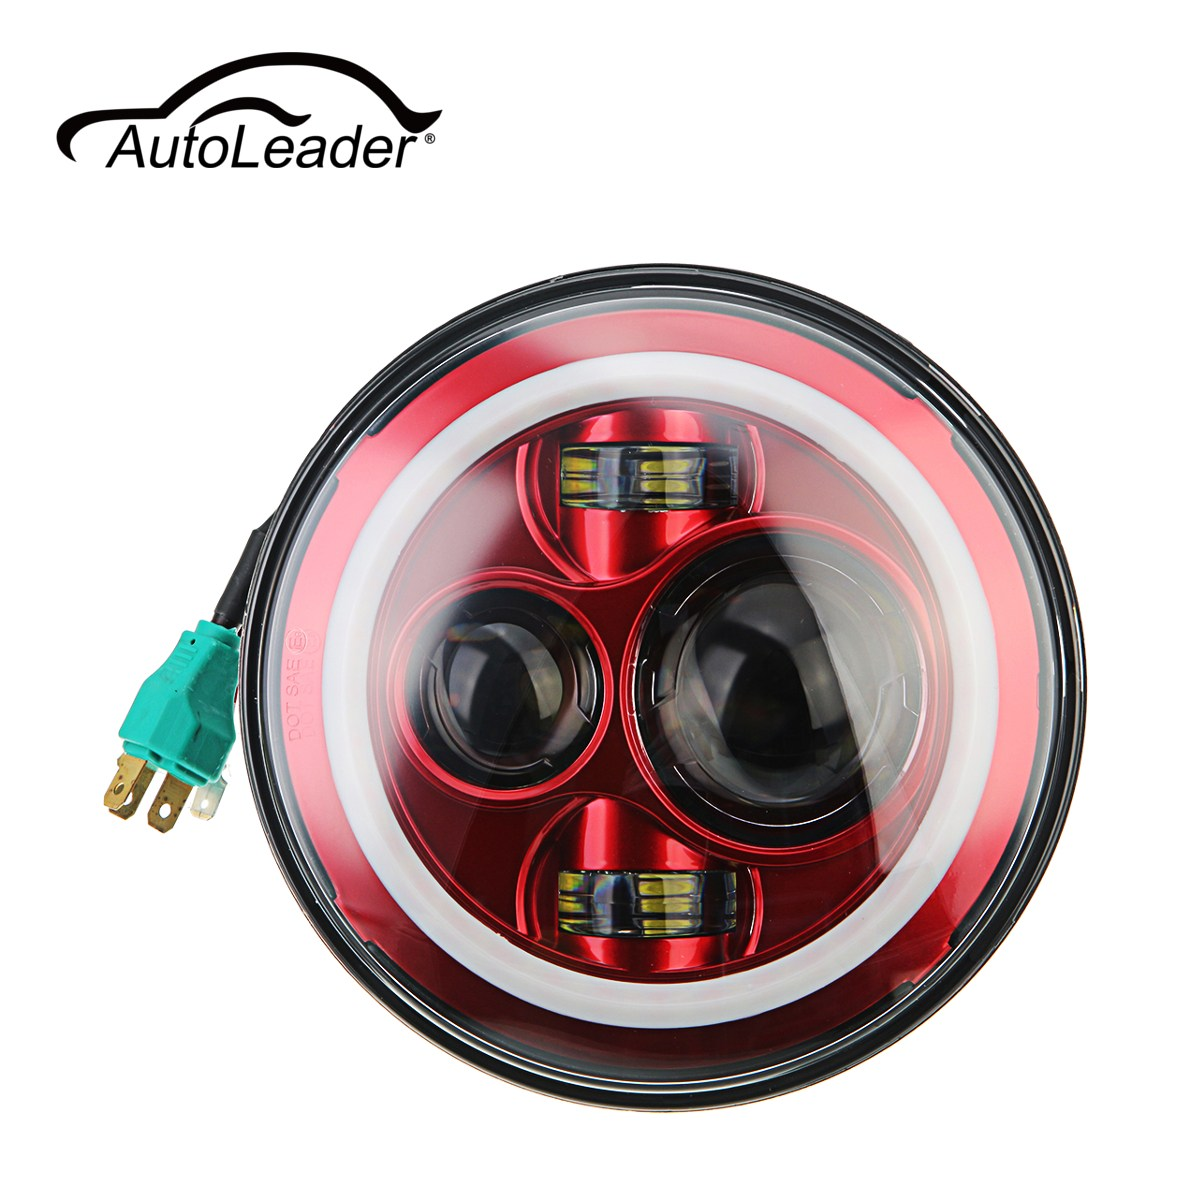 Autoleader 7 Inch LED 6000K Hi-Lo Beam Headlight Round Halo Angle Eyes Red/White For Wrangler/JEEP H4 Connector H13 Adapter 1pcs 5 75 inch led motorcycle projector daymakers 5 75 inch headlight for harleys dyan h4 hi lo beam lights lamp bulb angle eye